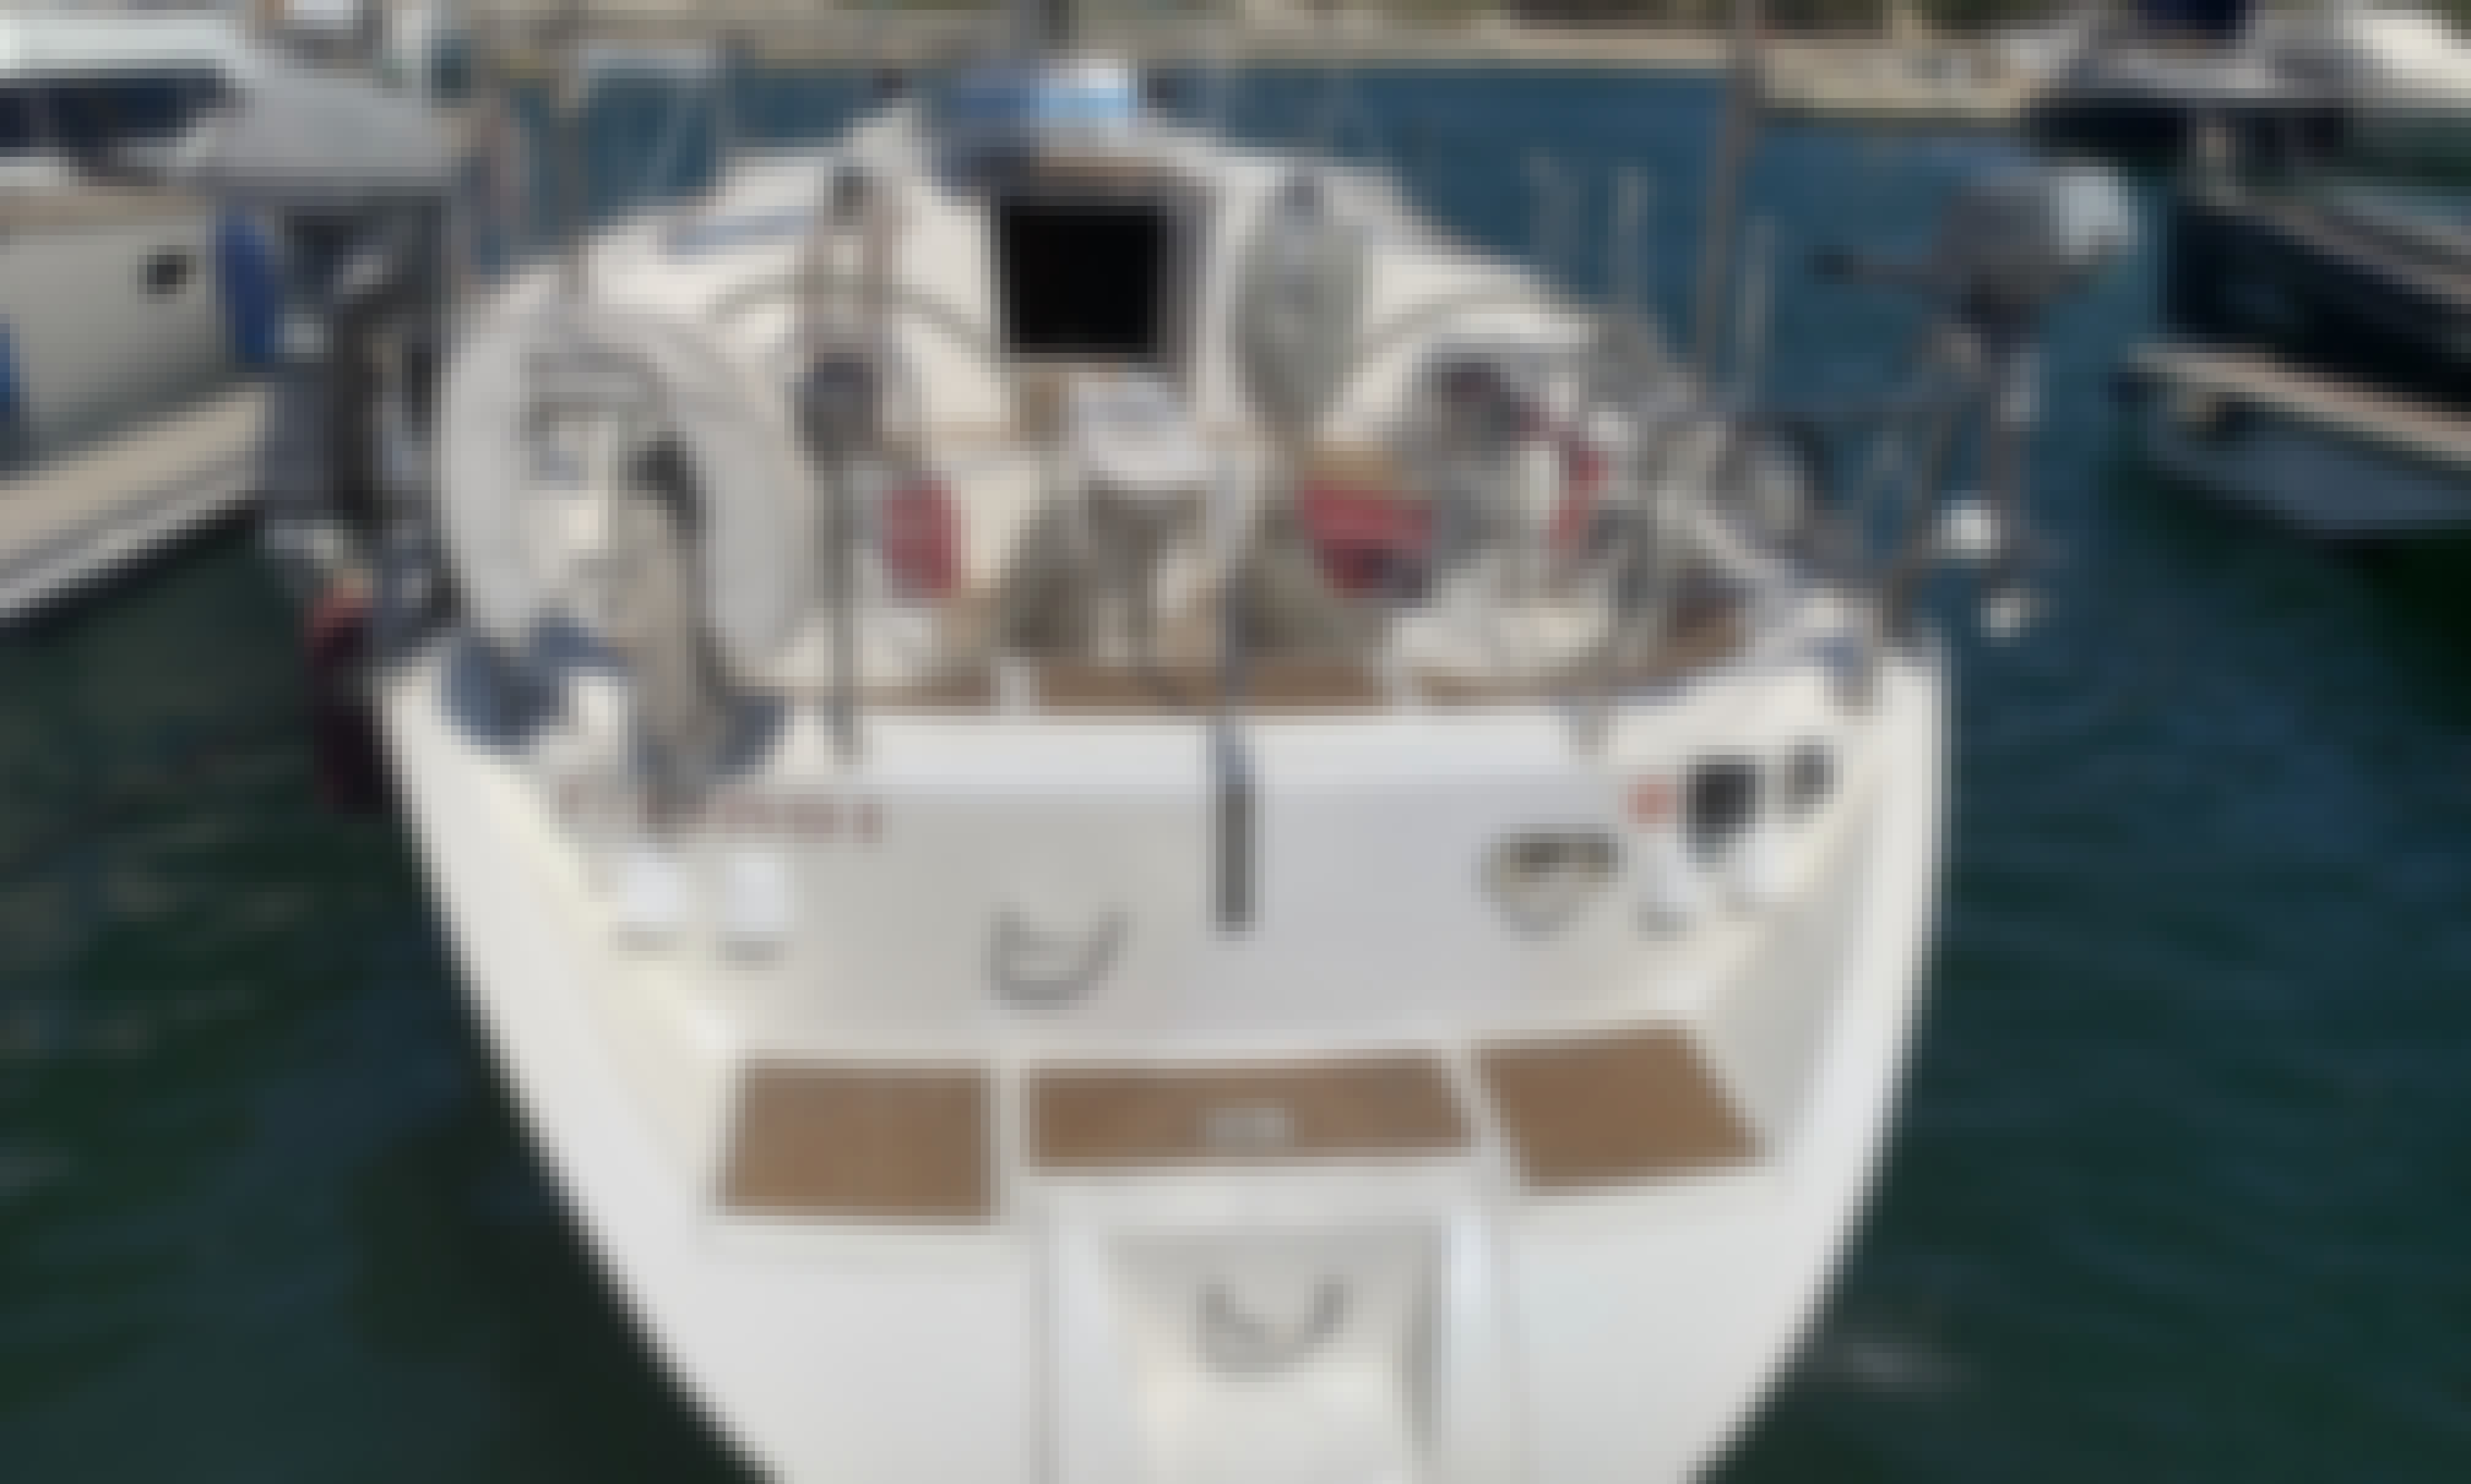 Charter this Beneteau Oceanis 50 Sailboat for 11 Guests in Dénia